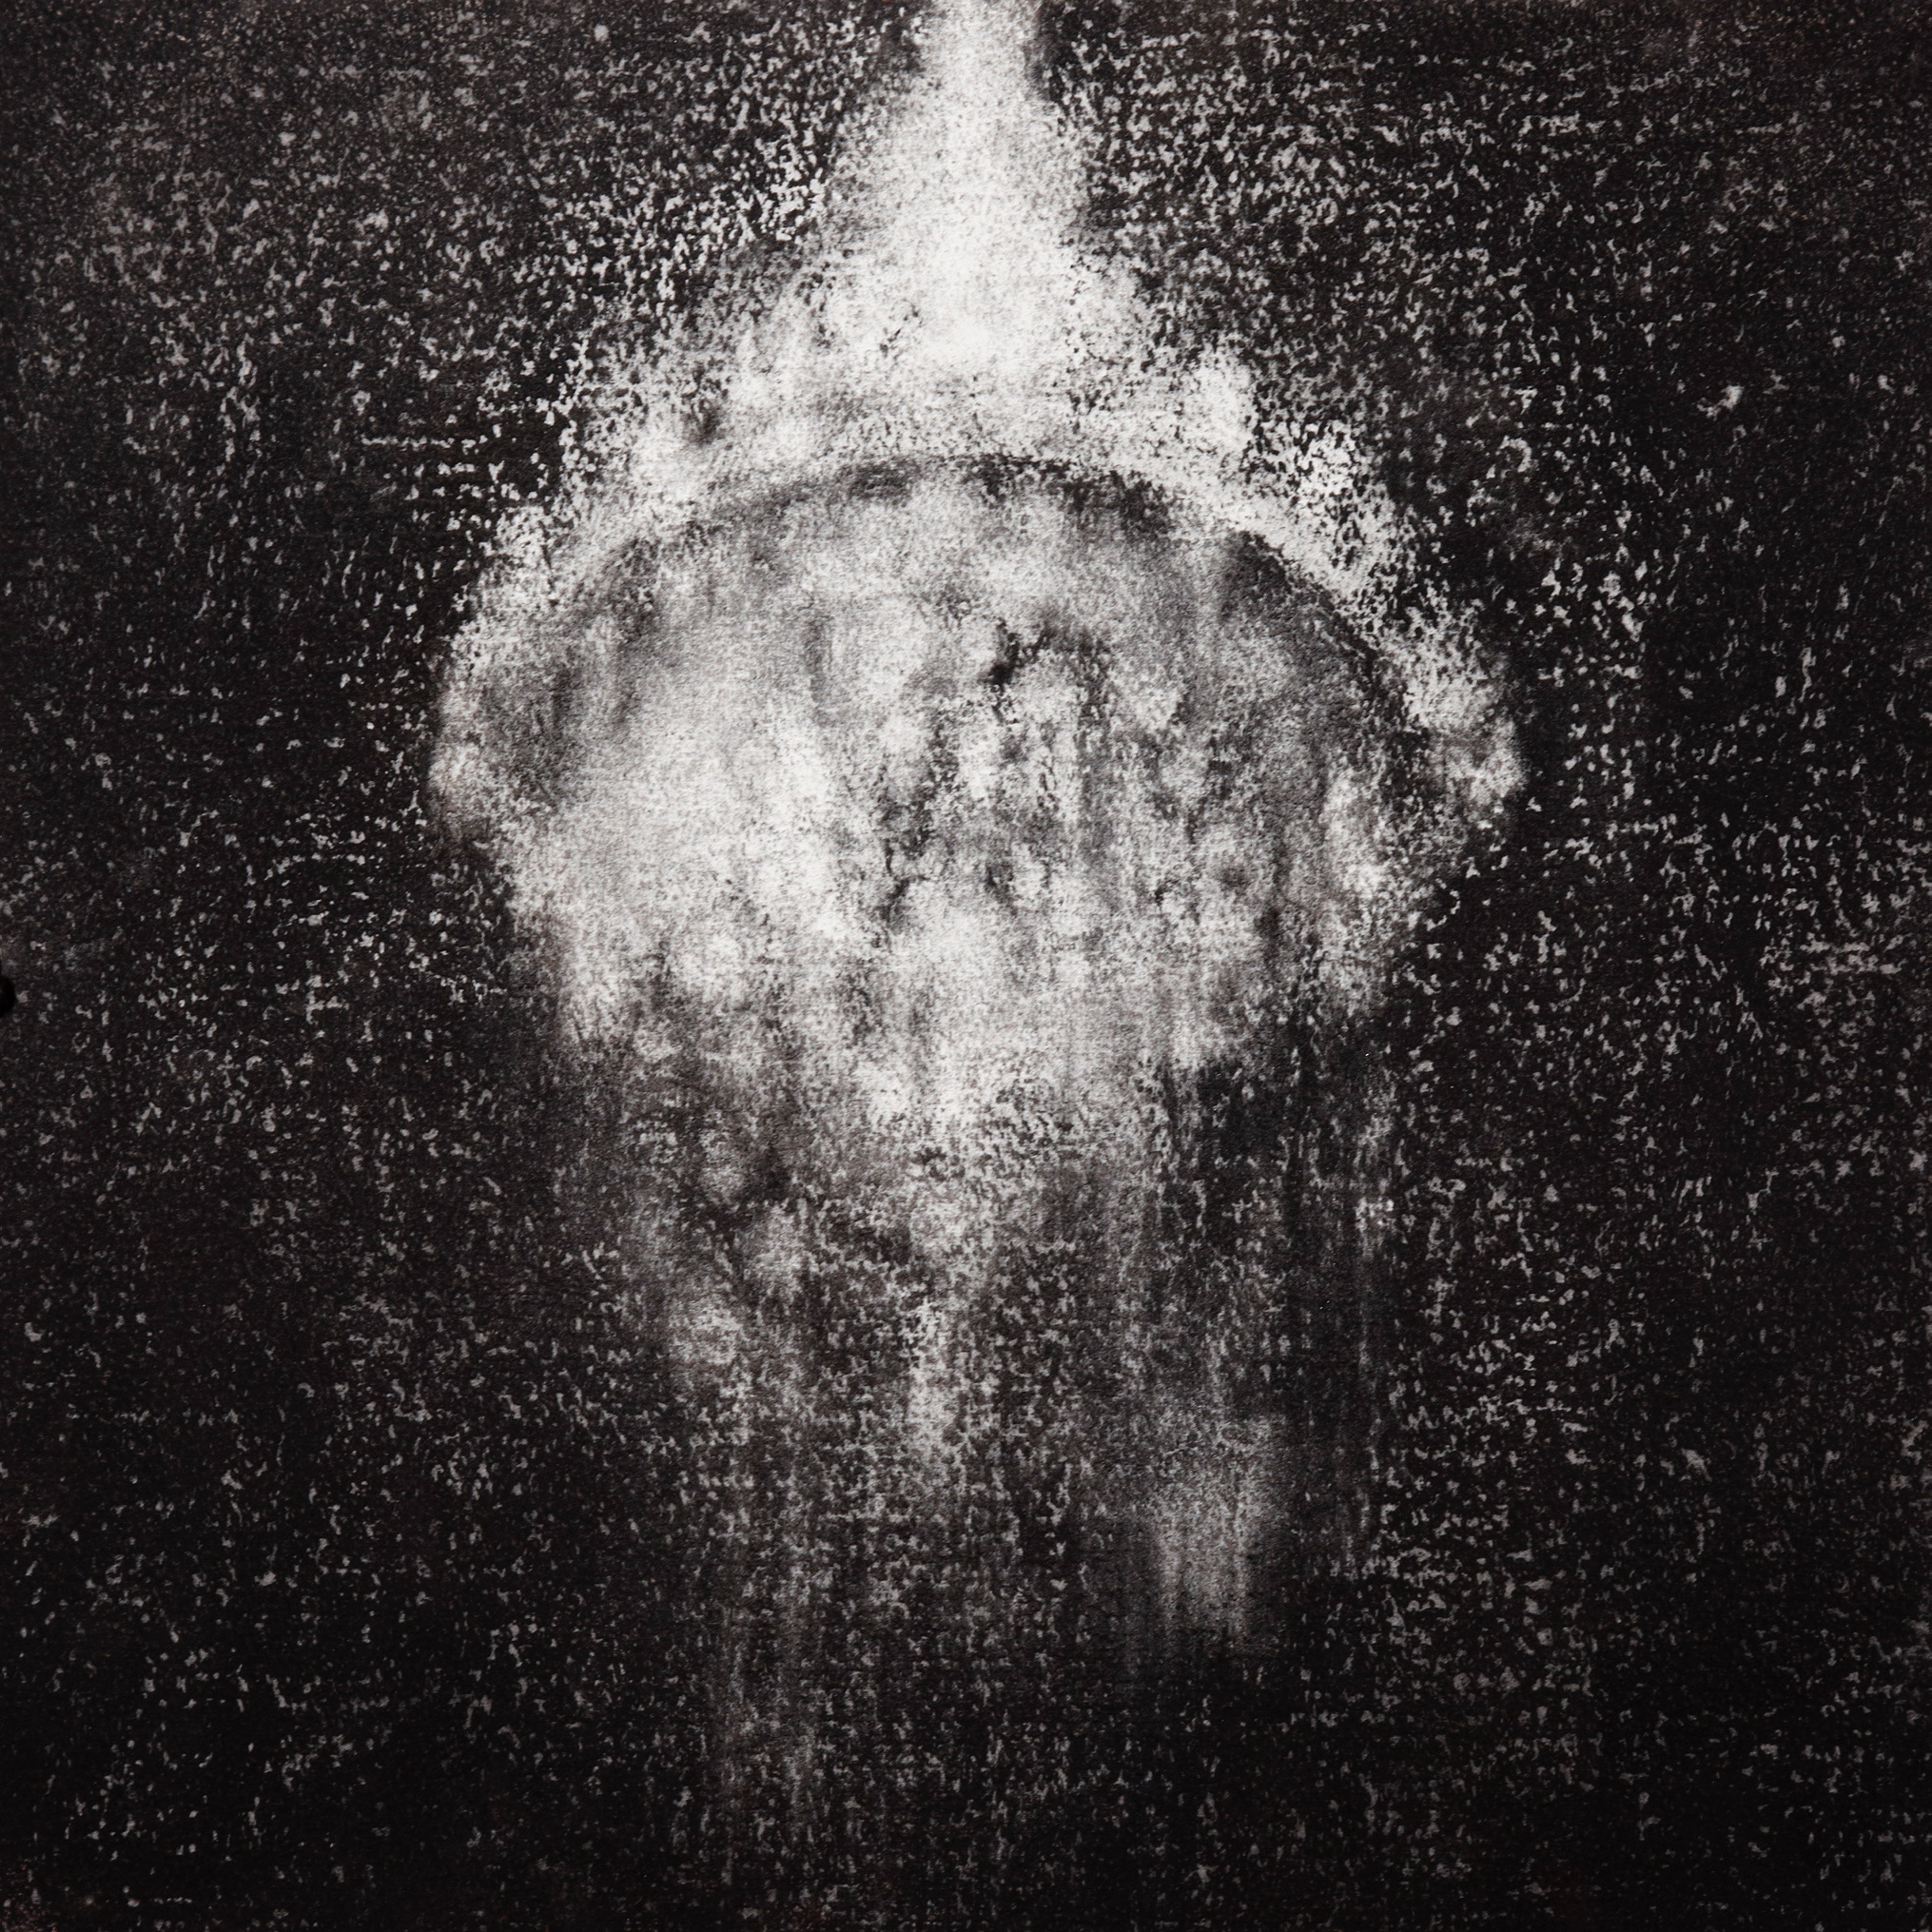 Chandelier, 2009, charcoal on paper, 40.5x 40.5cm